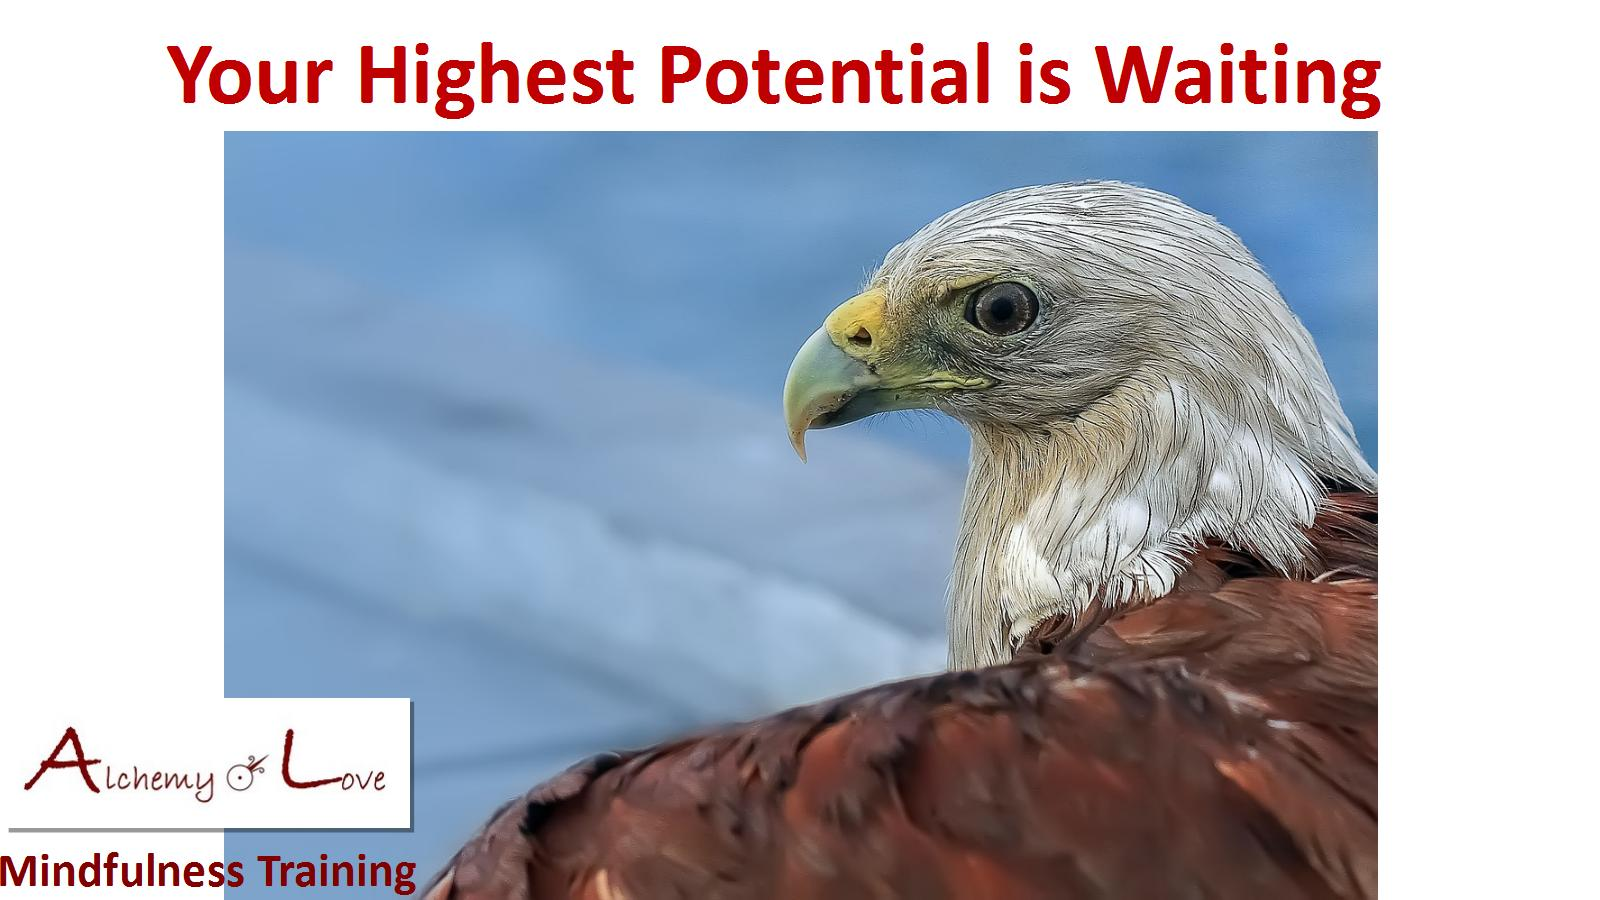 divergent thinking: highest potential eagle